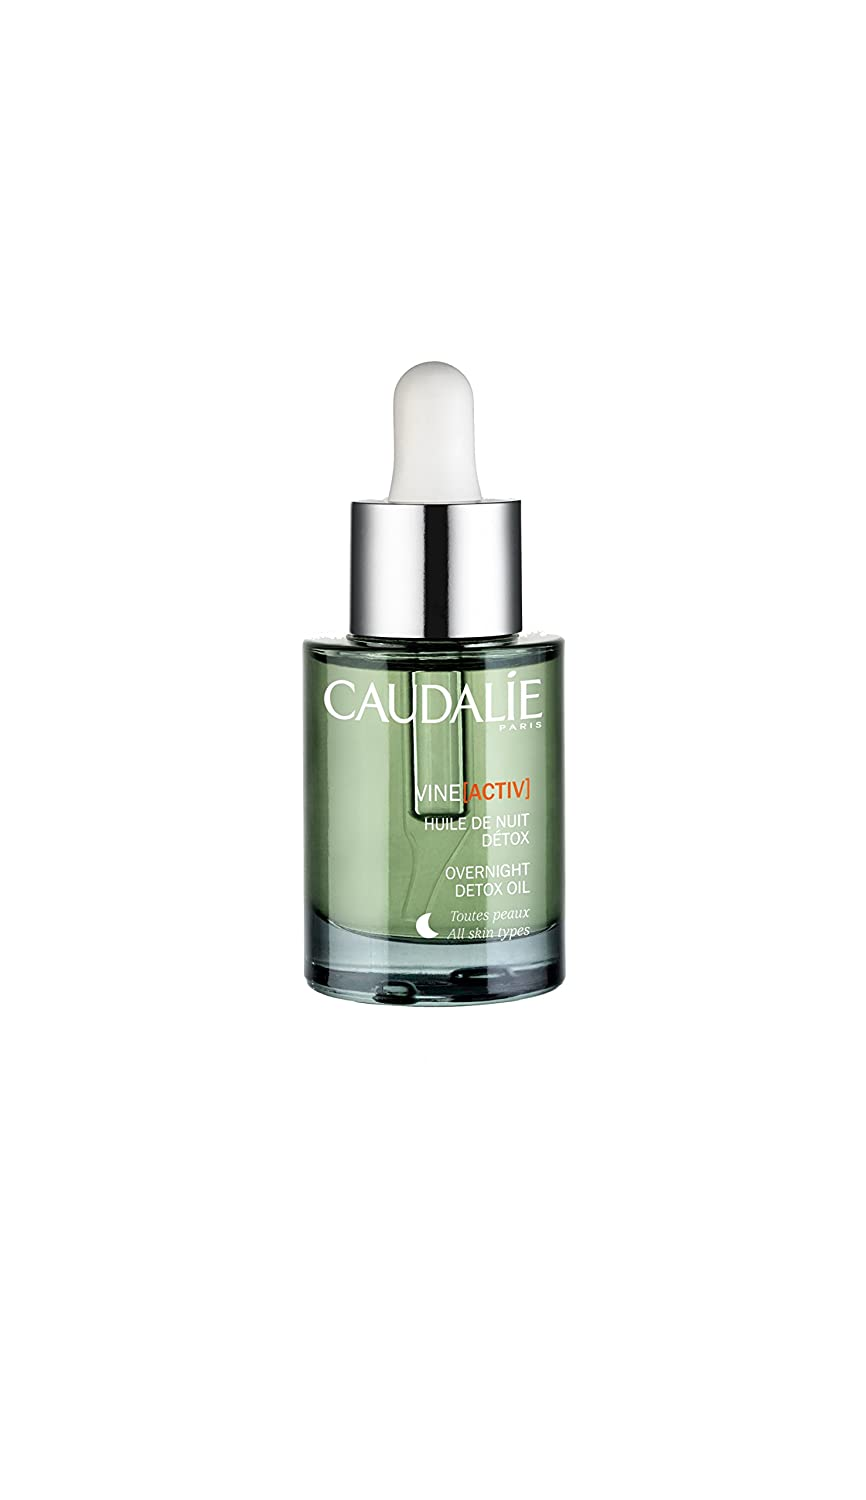 Caudalie Vineactiv Night Detox Oil 30ml 29973